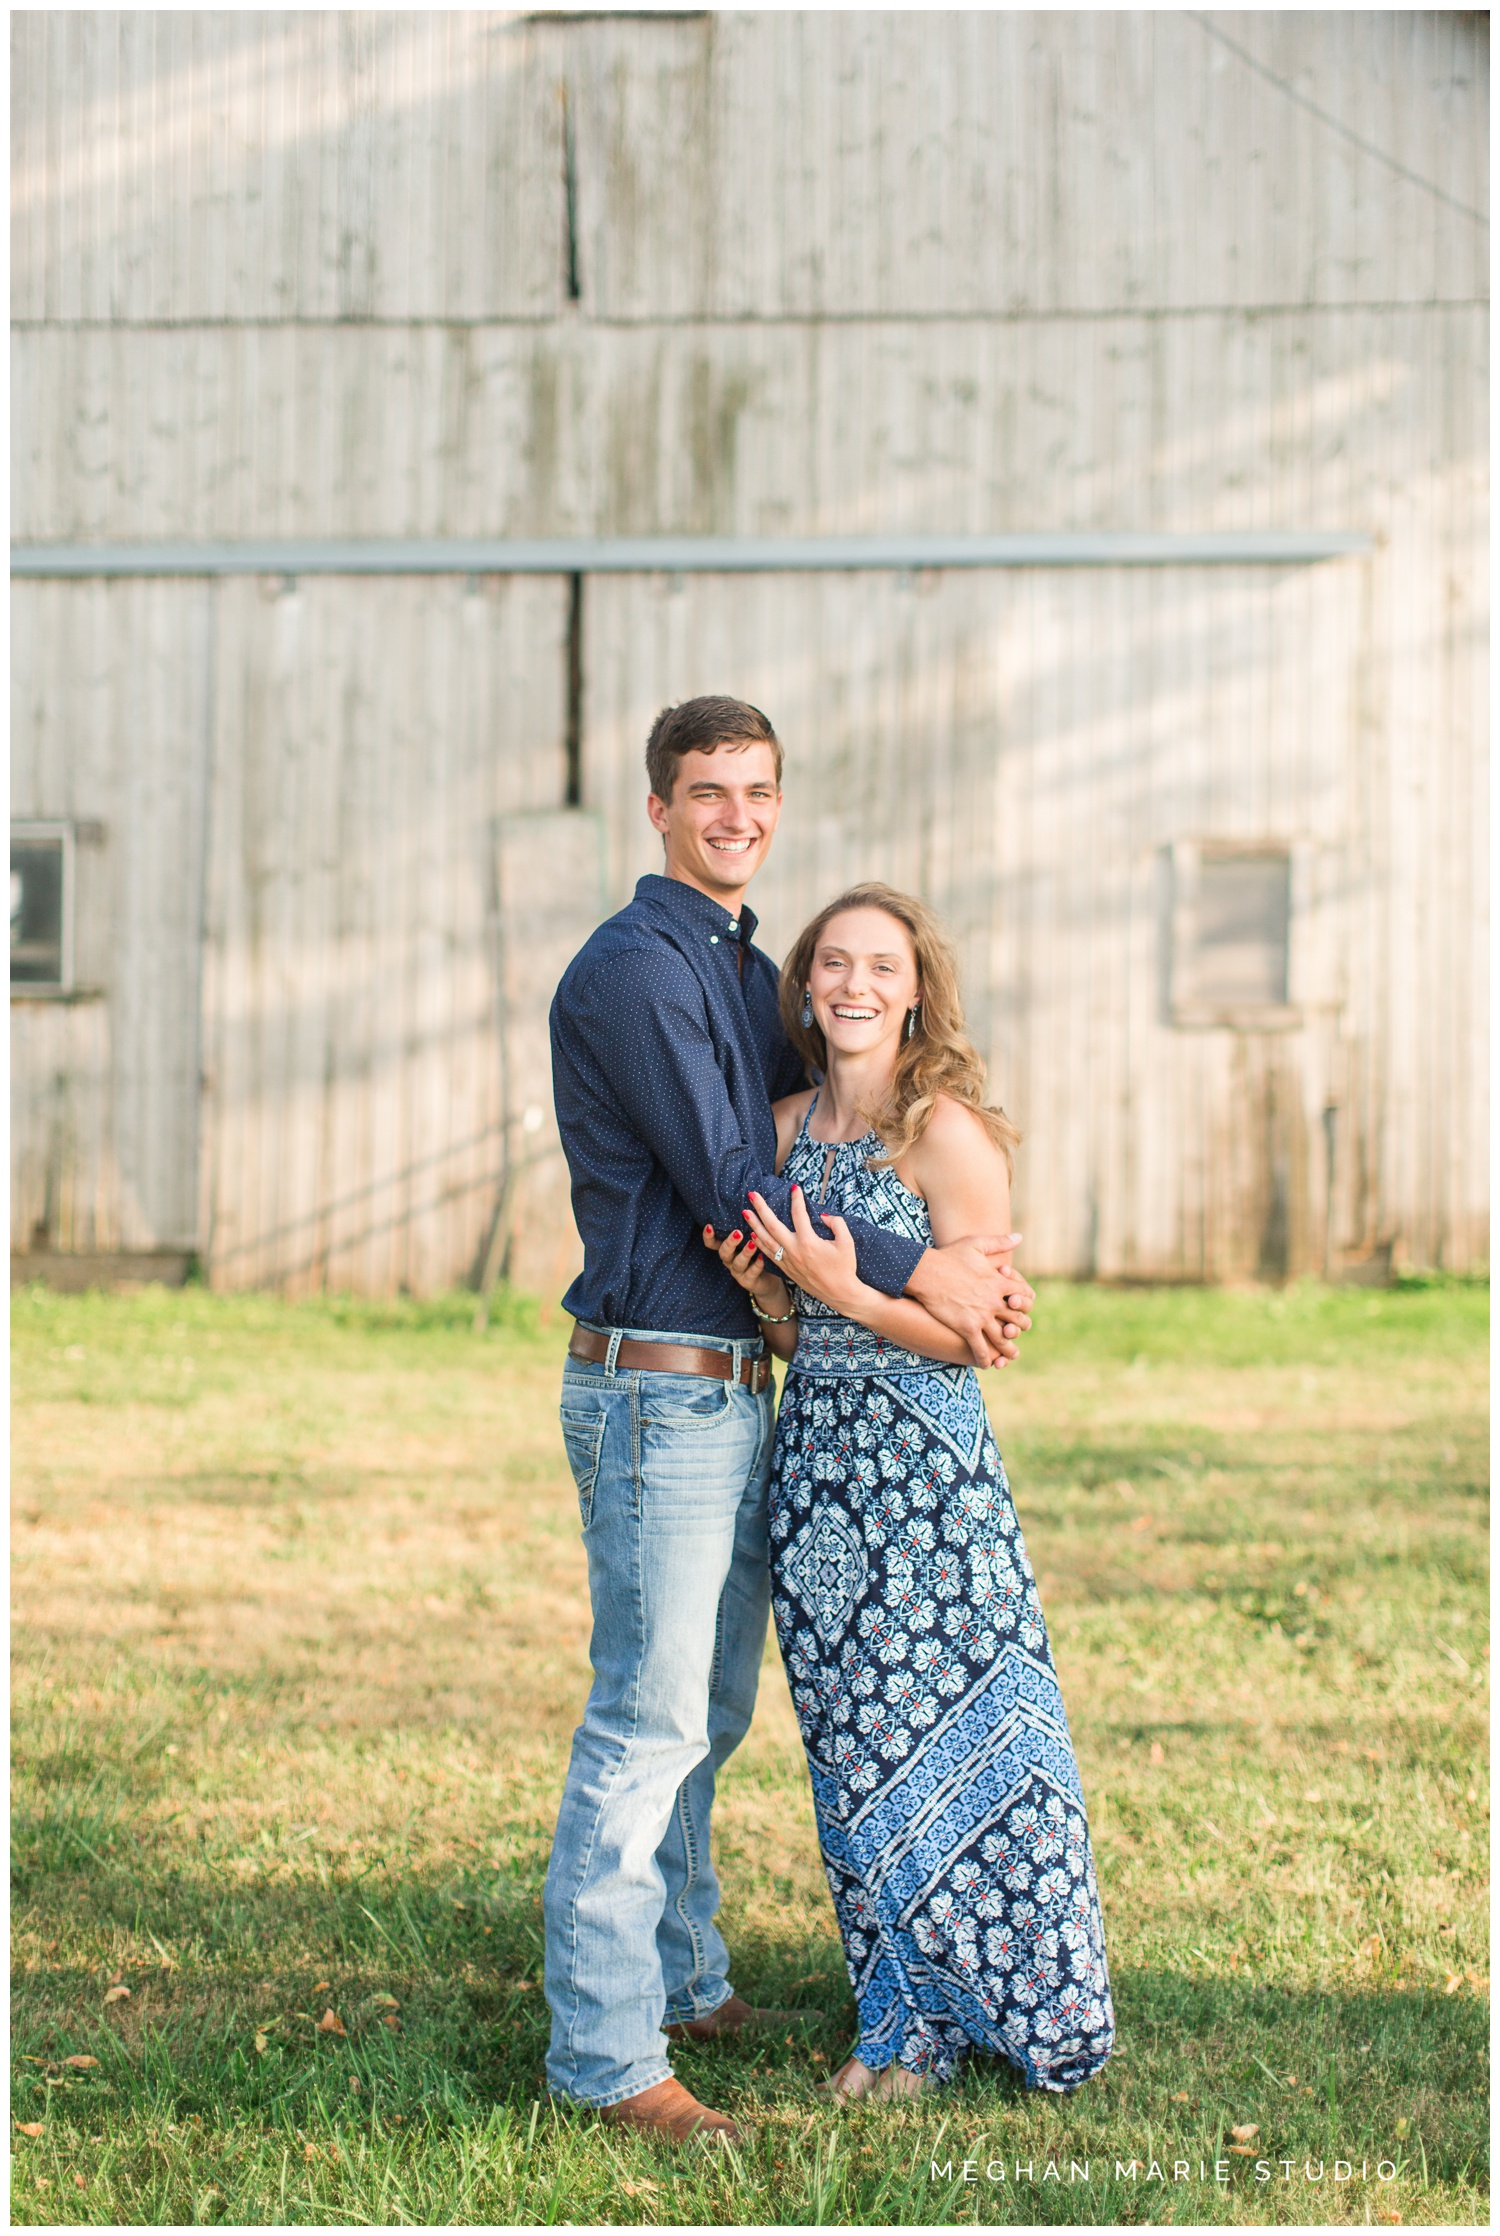 meghan marie studio wedding photographer ohio troy dayton columbus small town rustic rural farm cows russia shelby county barns antique vintage engagement lauren heaton_0558.jpg